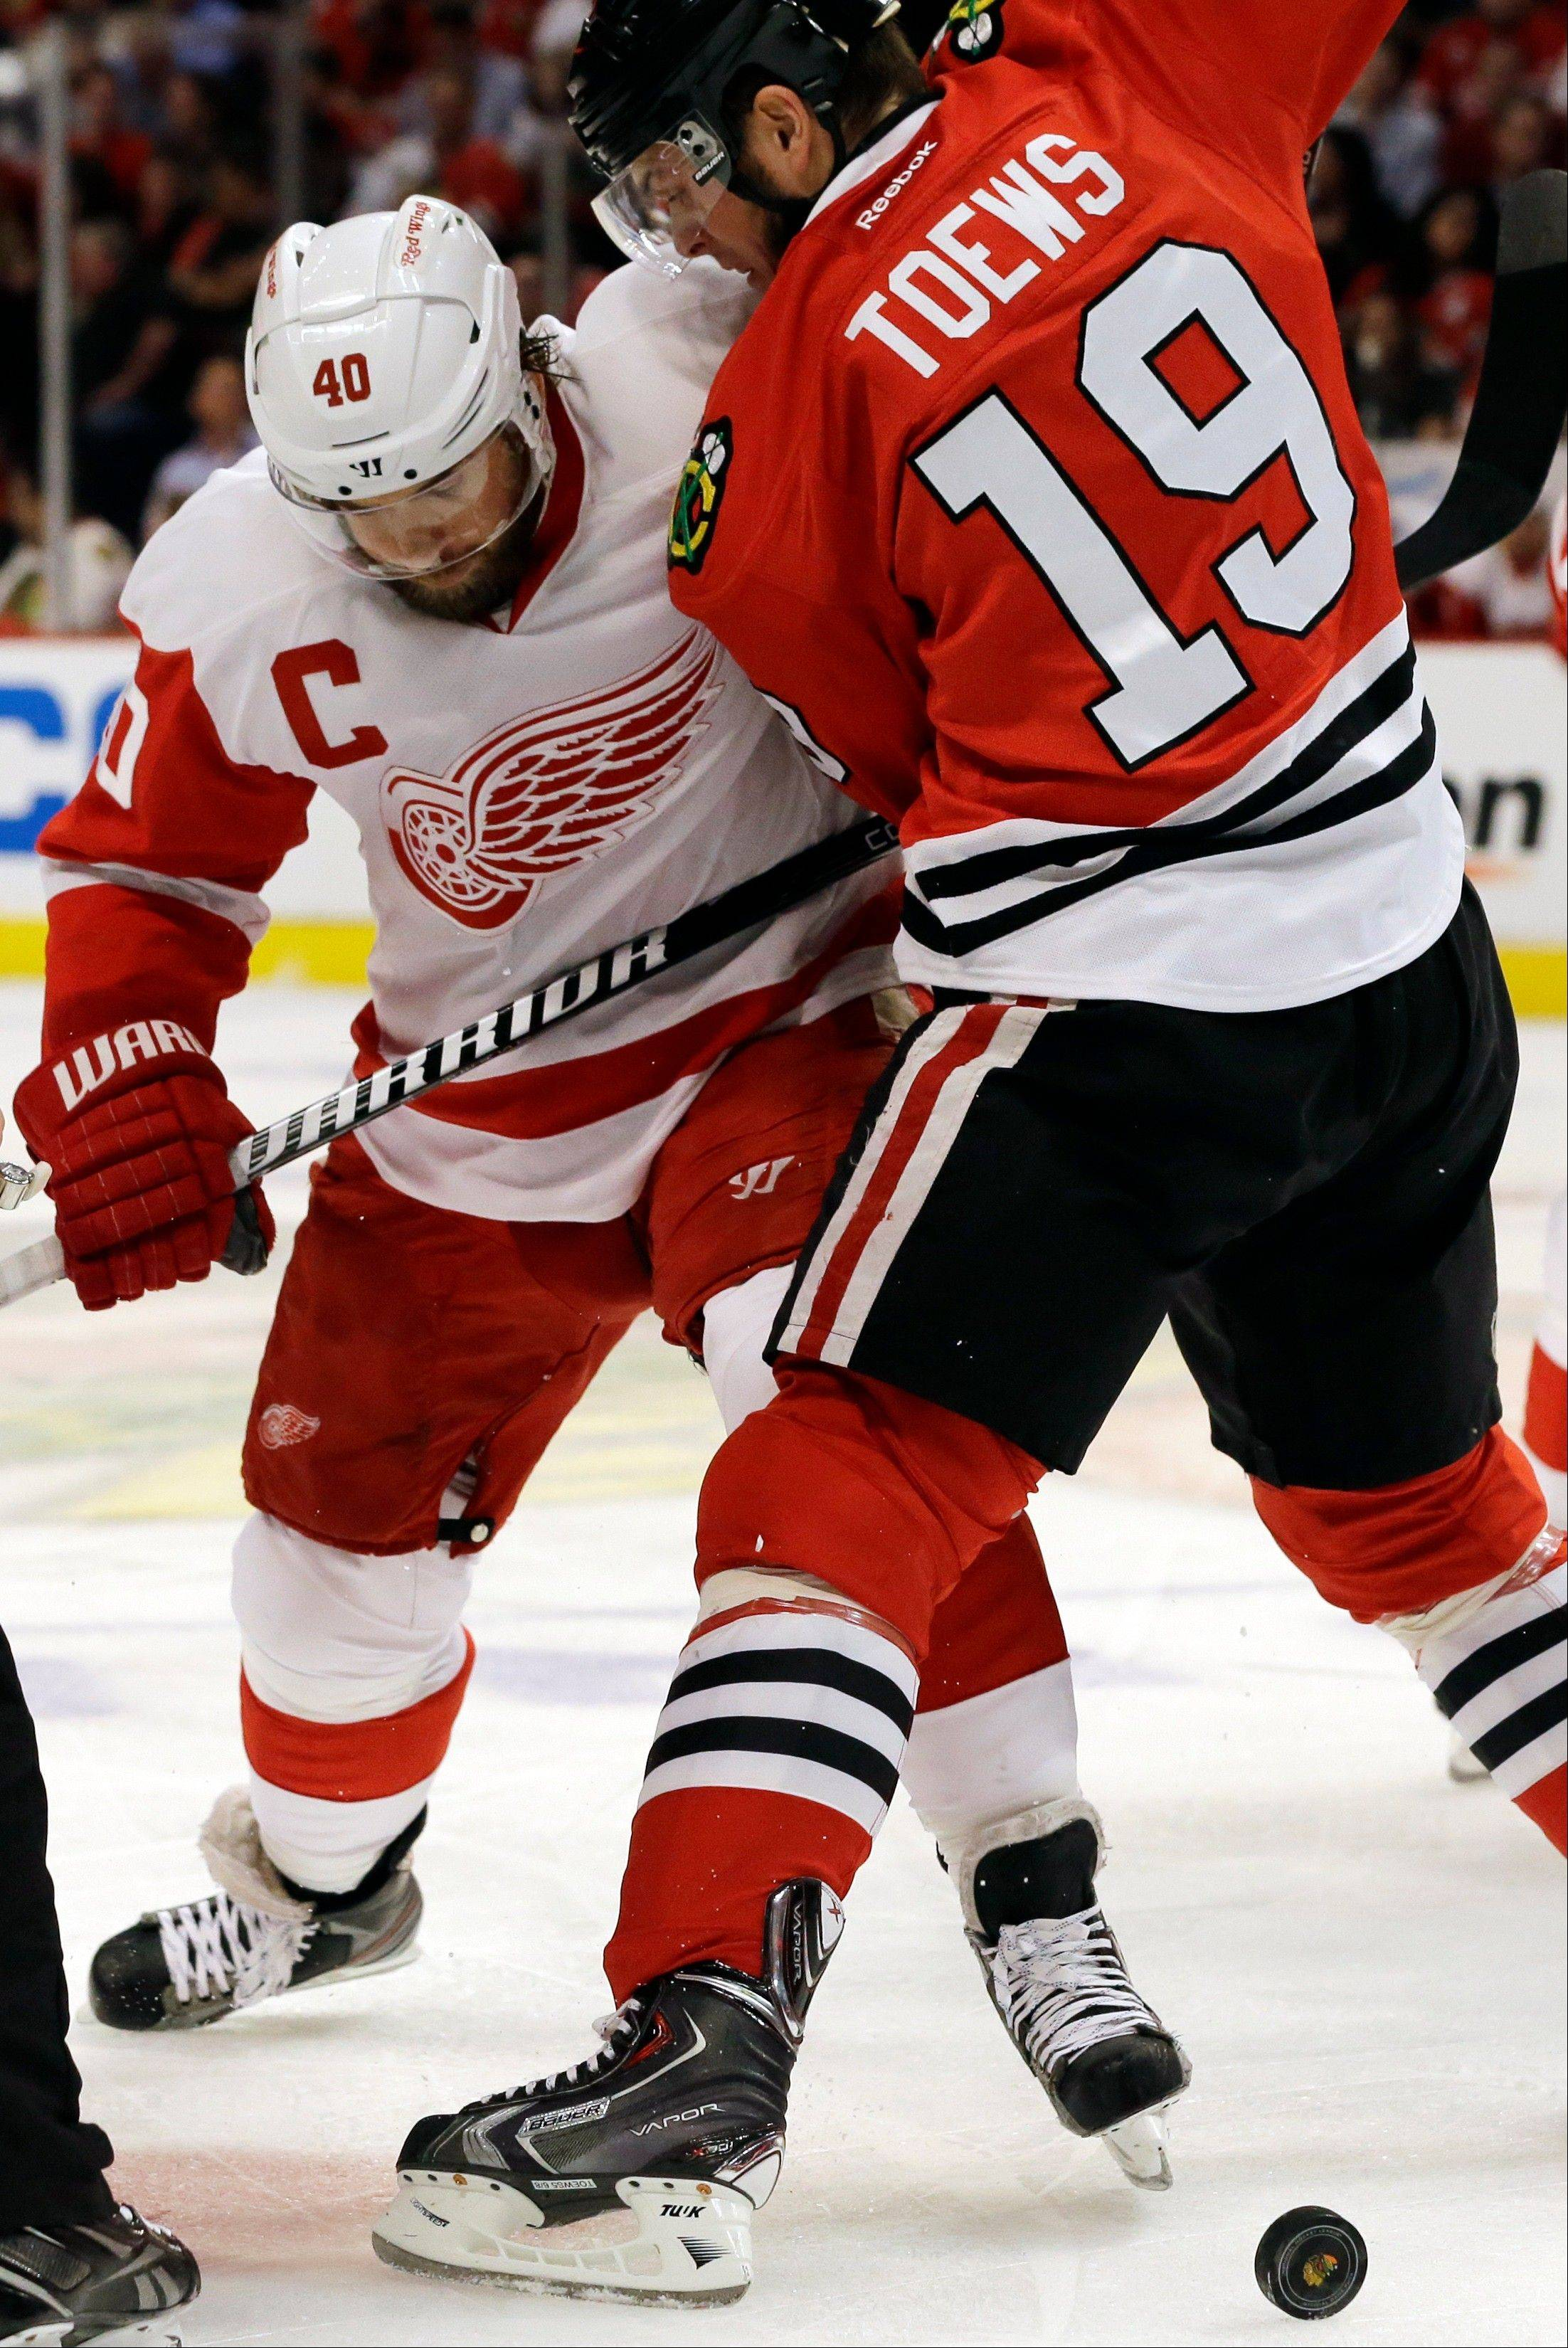 Detroit Red Wings' Henrik Zetterberg (40) battles for the puck against Chicago Blackhawks' Jonathan Toews (19) during the first period of Game 1 of an NHL hockey playoffs Western Conference semifinal in Chicago, Wednesday, May 15, 2013.